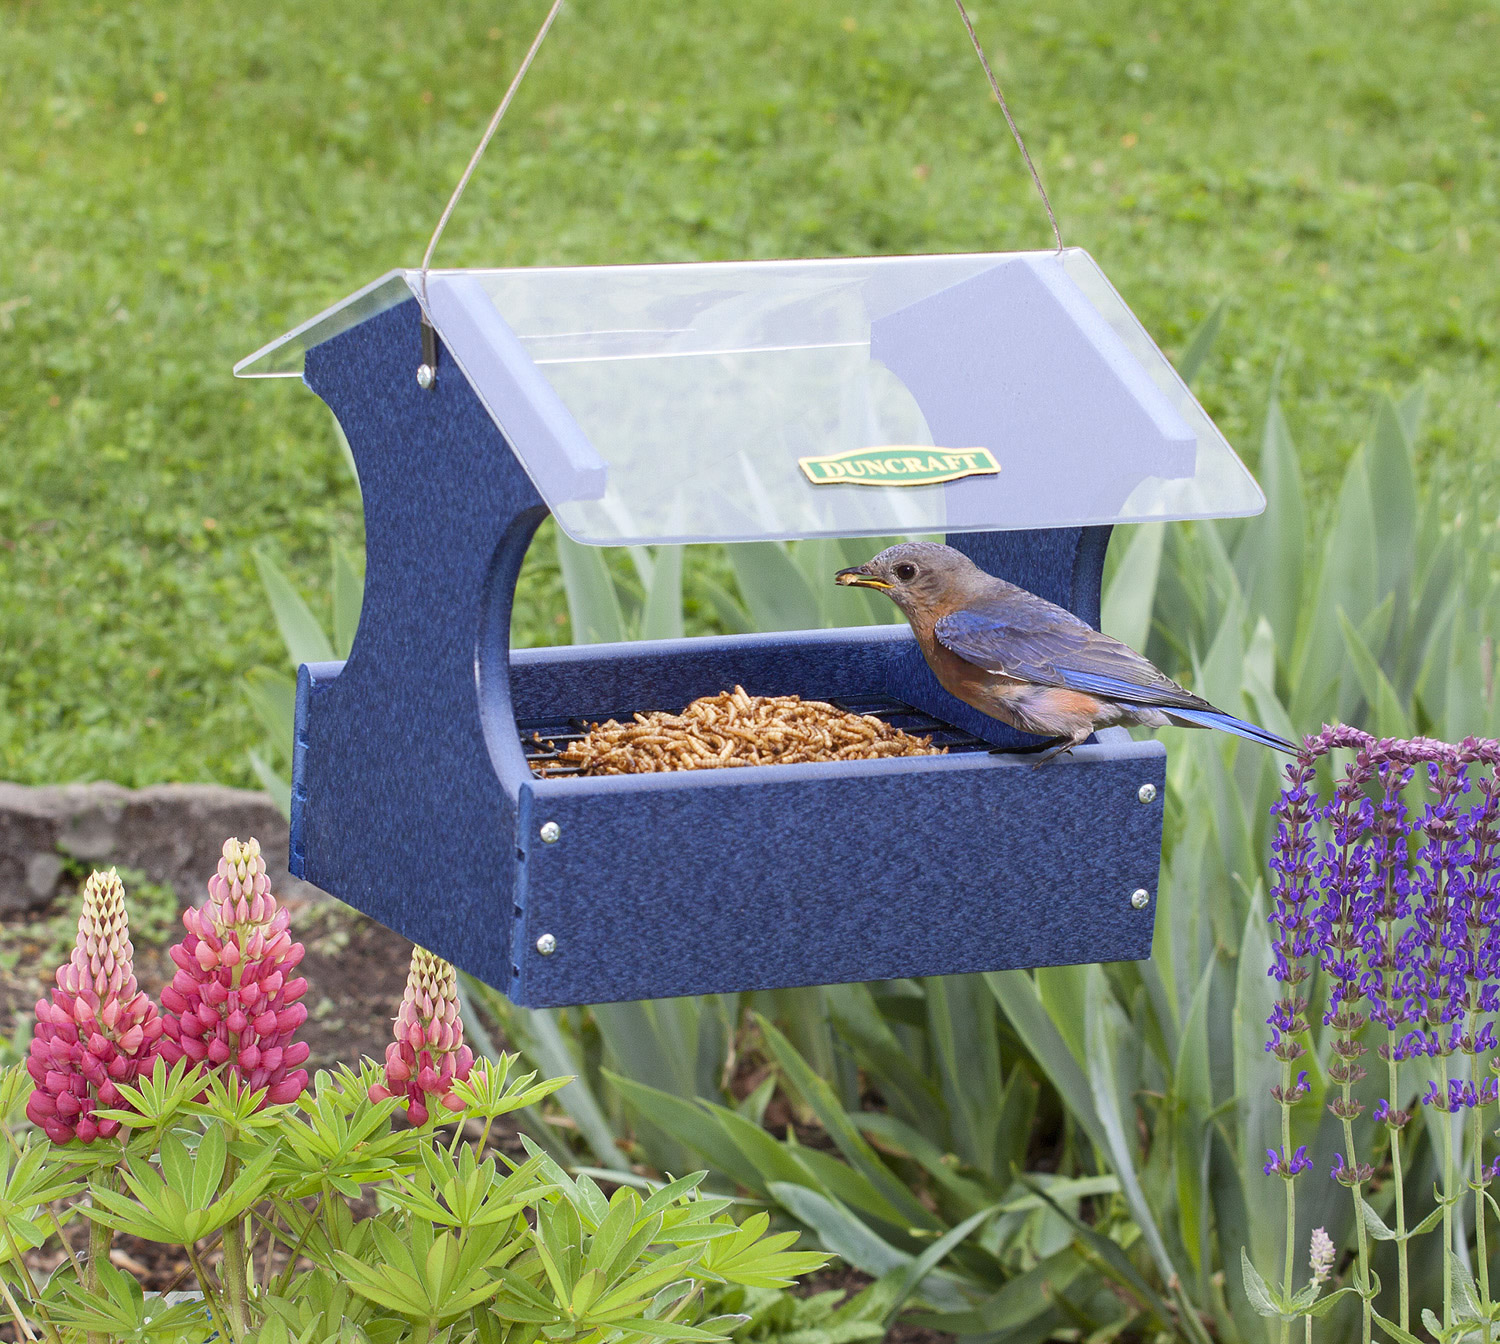 feeders backyard birds collection bird chirper great blue and choice seed supper bluebird mealworm prices feeder suet dome